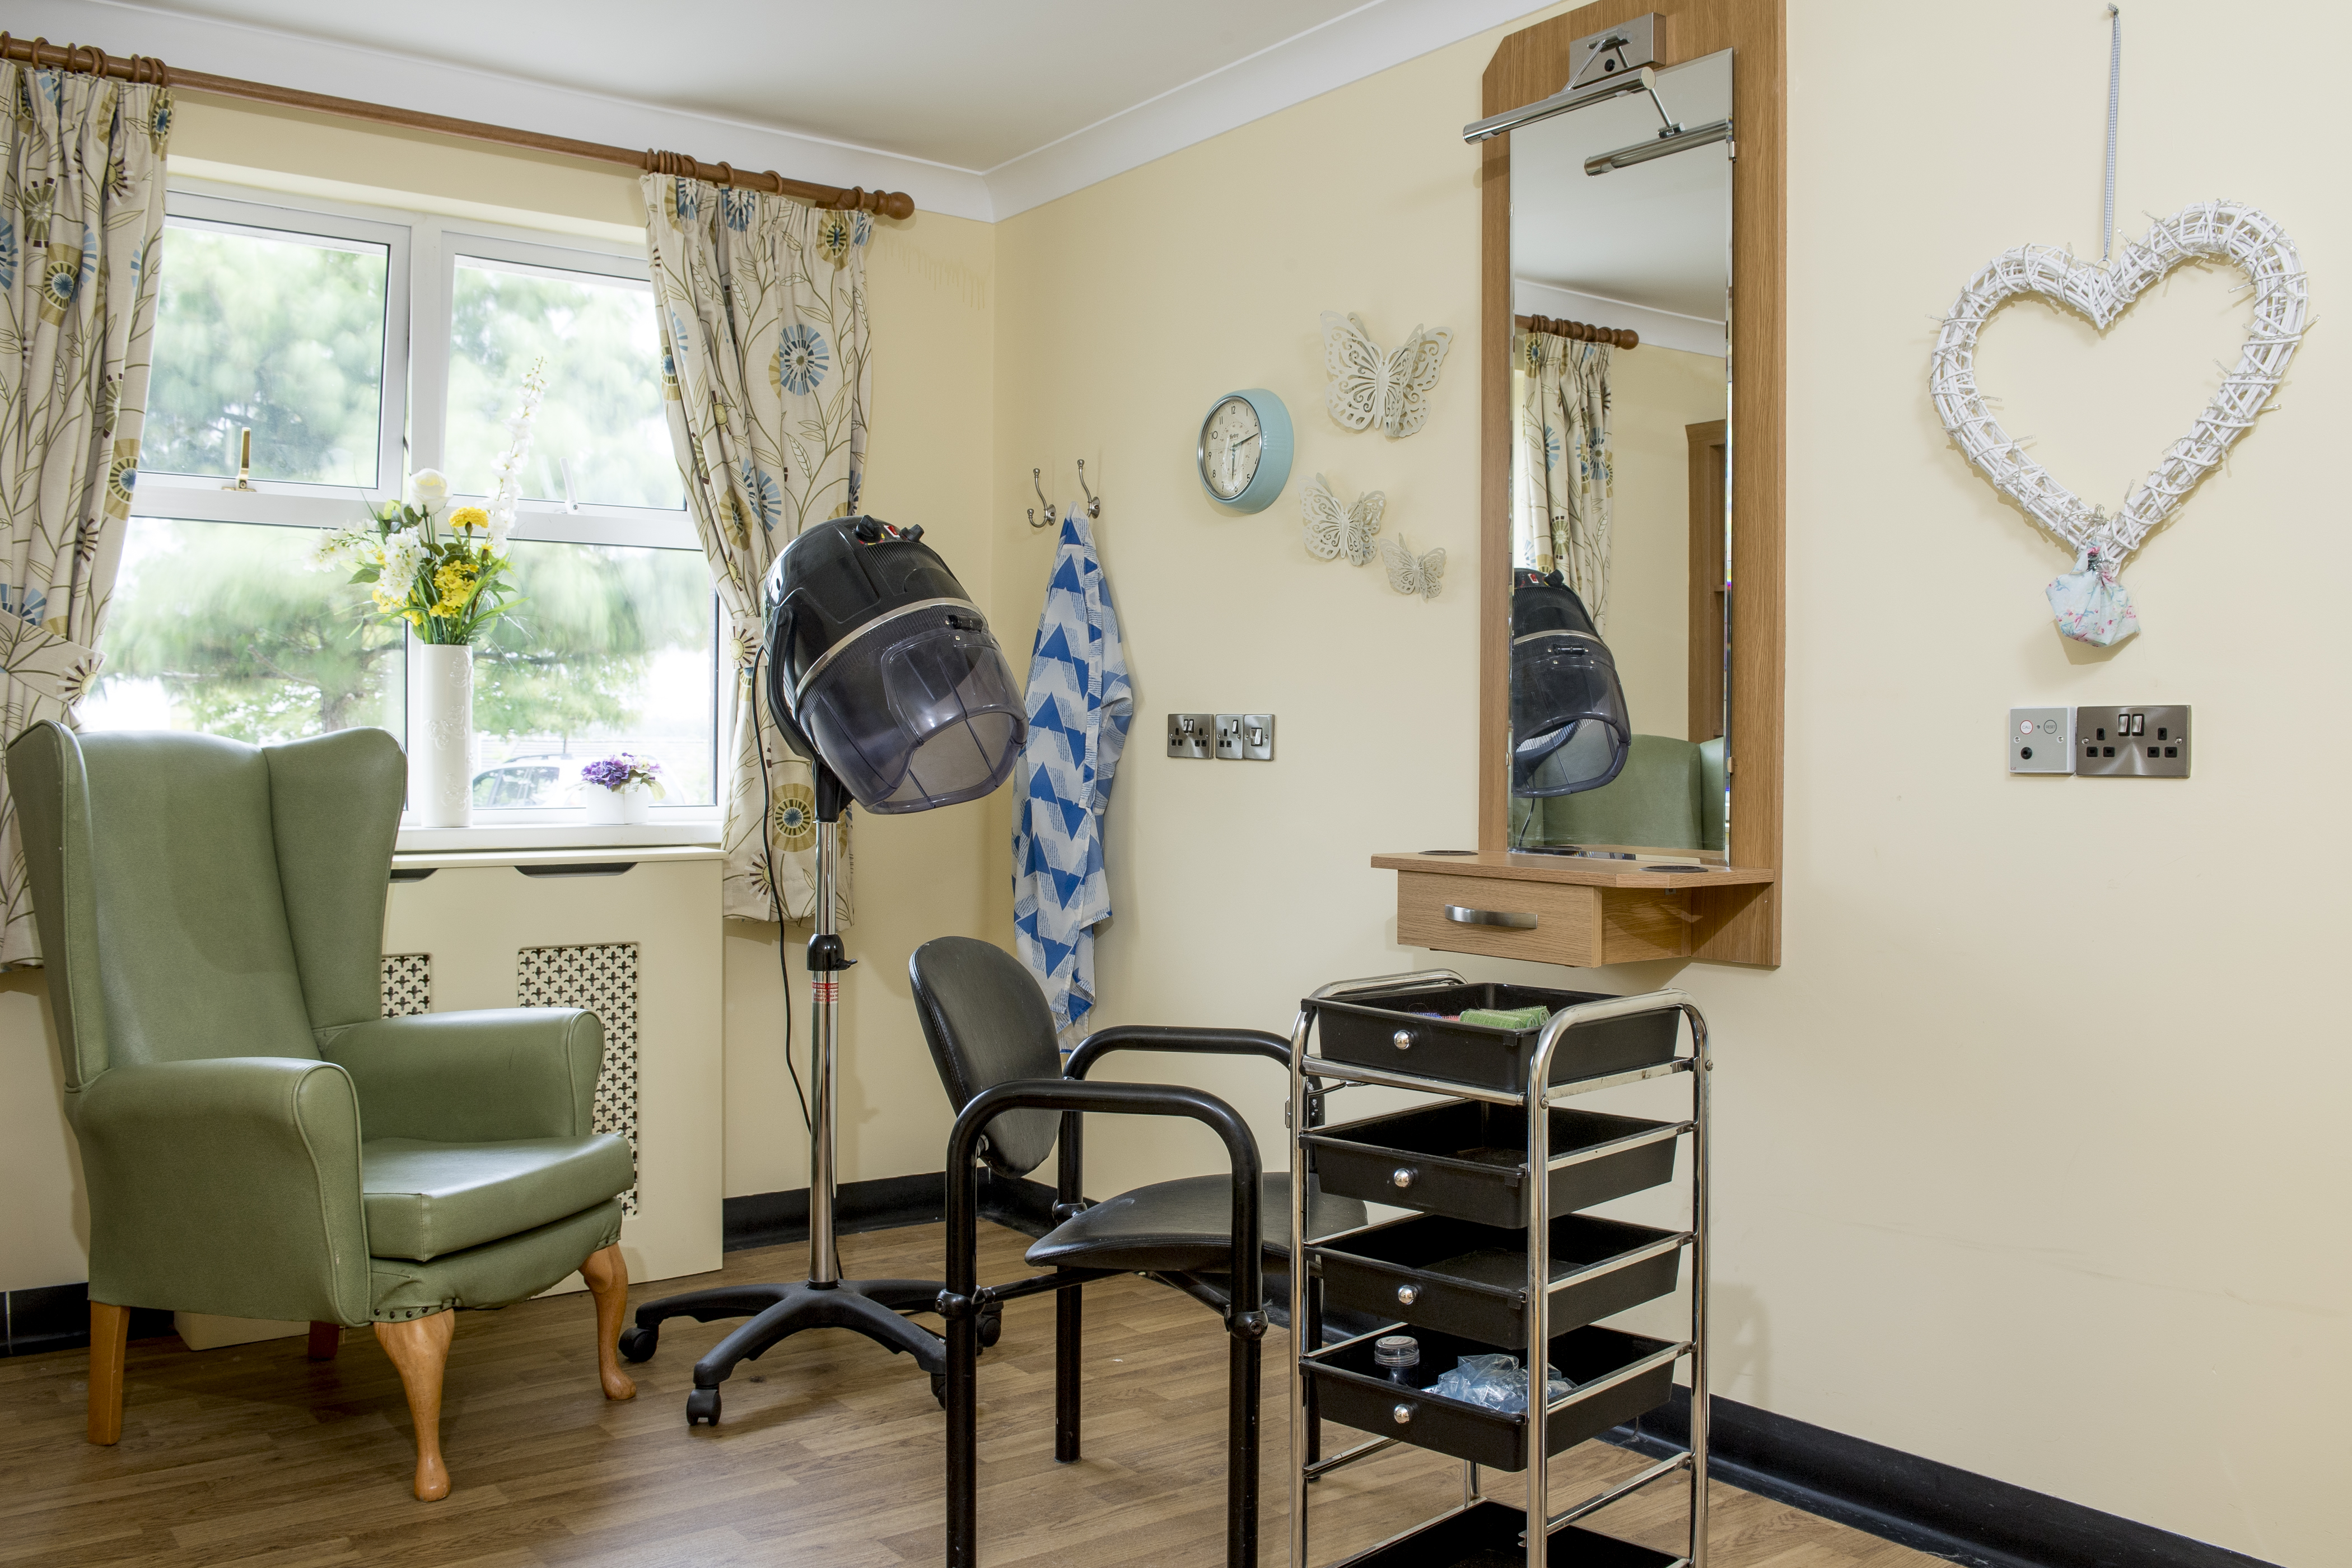 Hairdressing Salon Of A Care Home In Ballymena